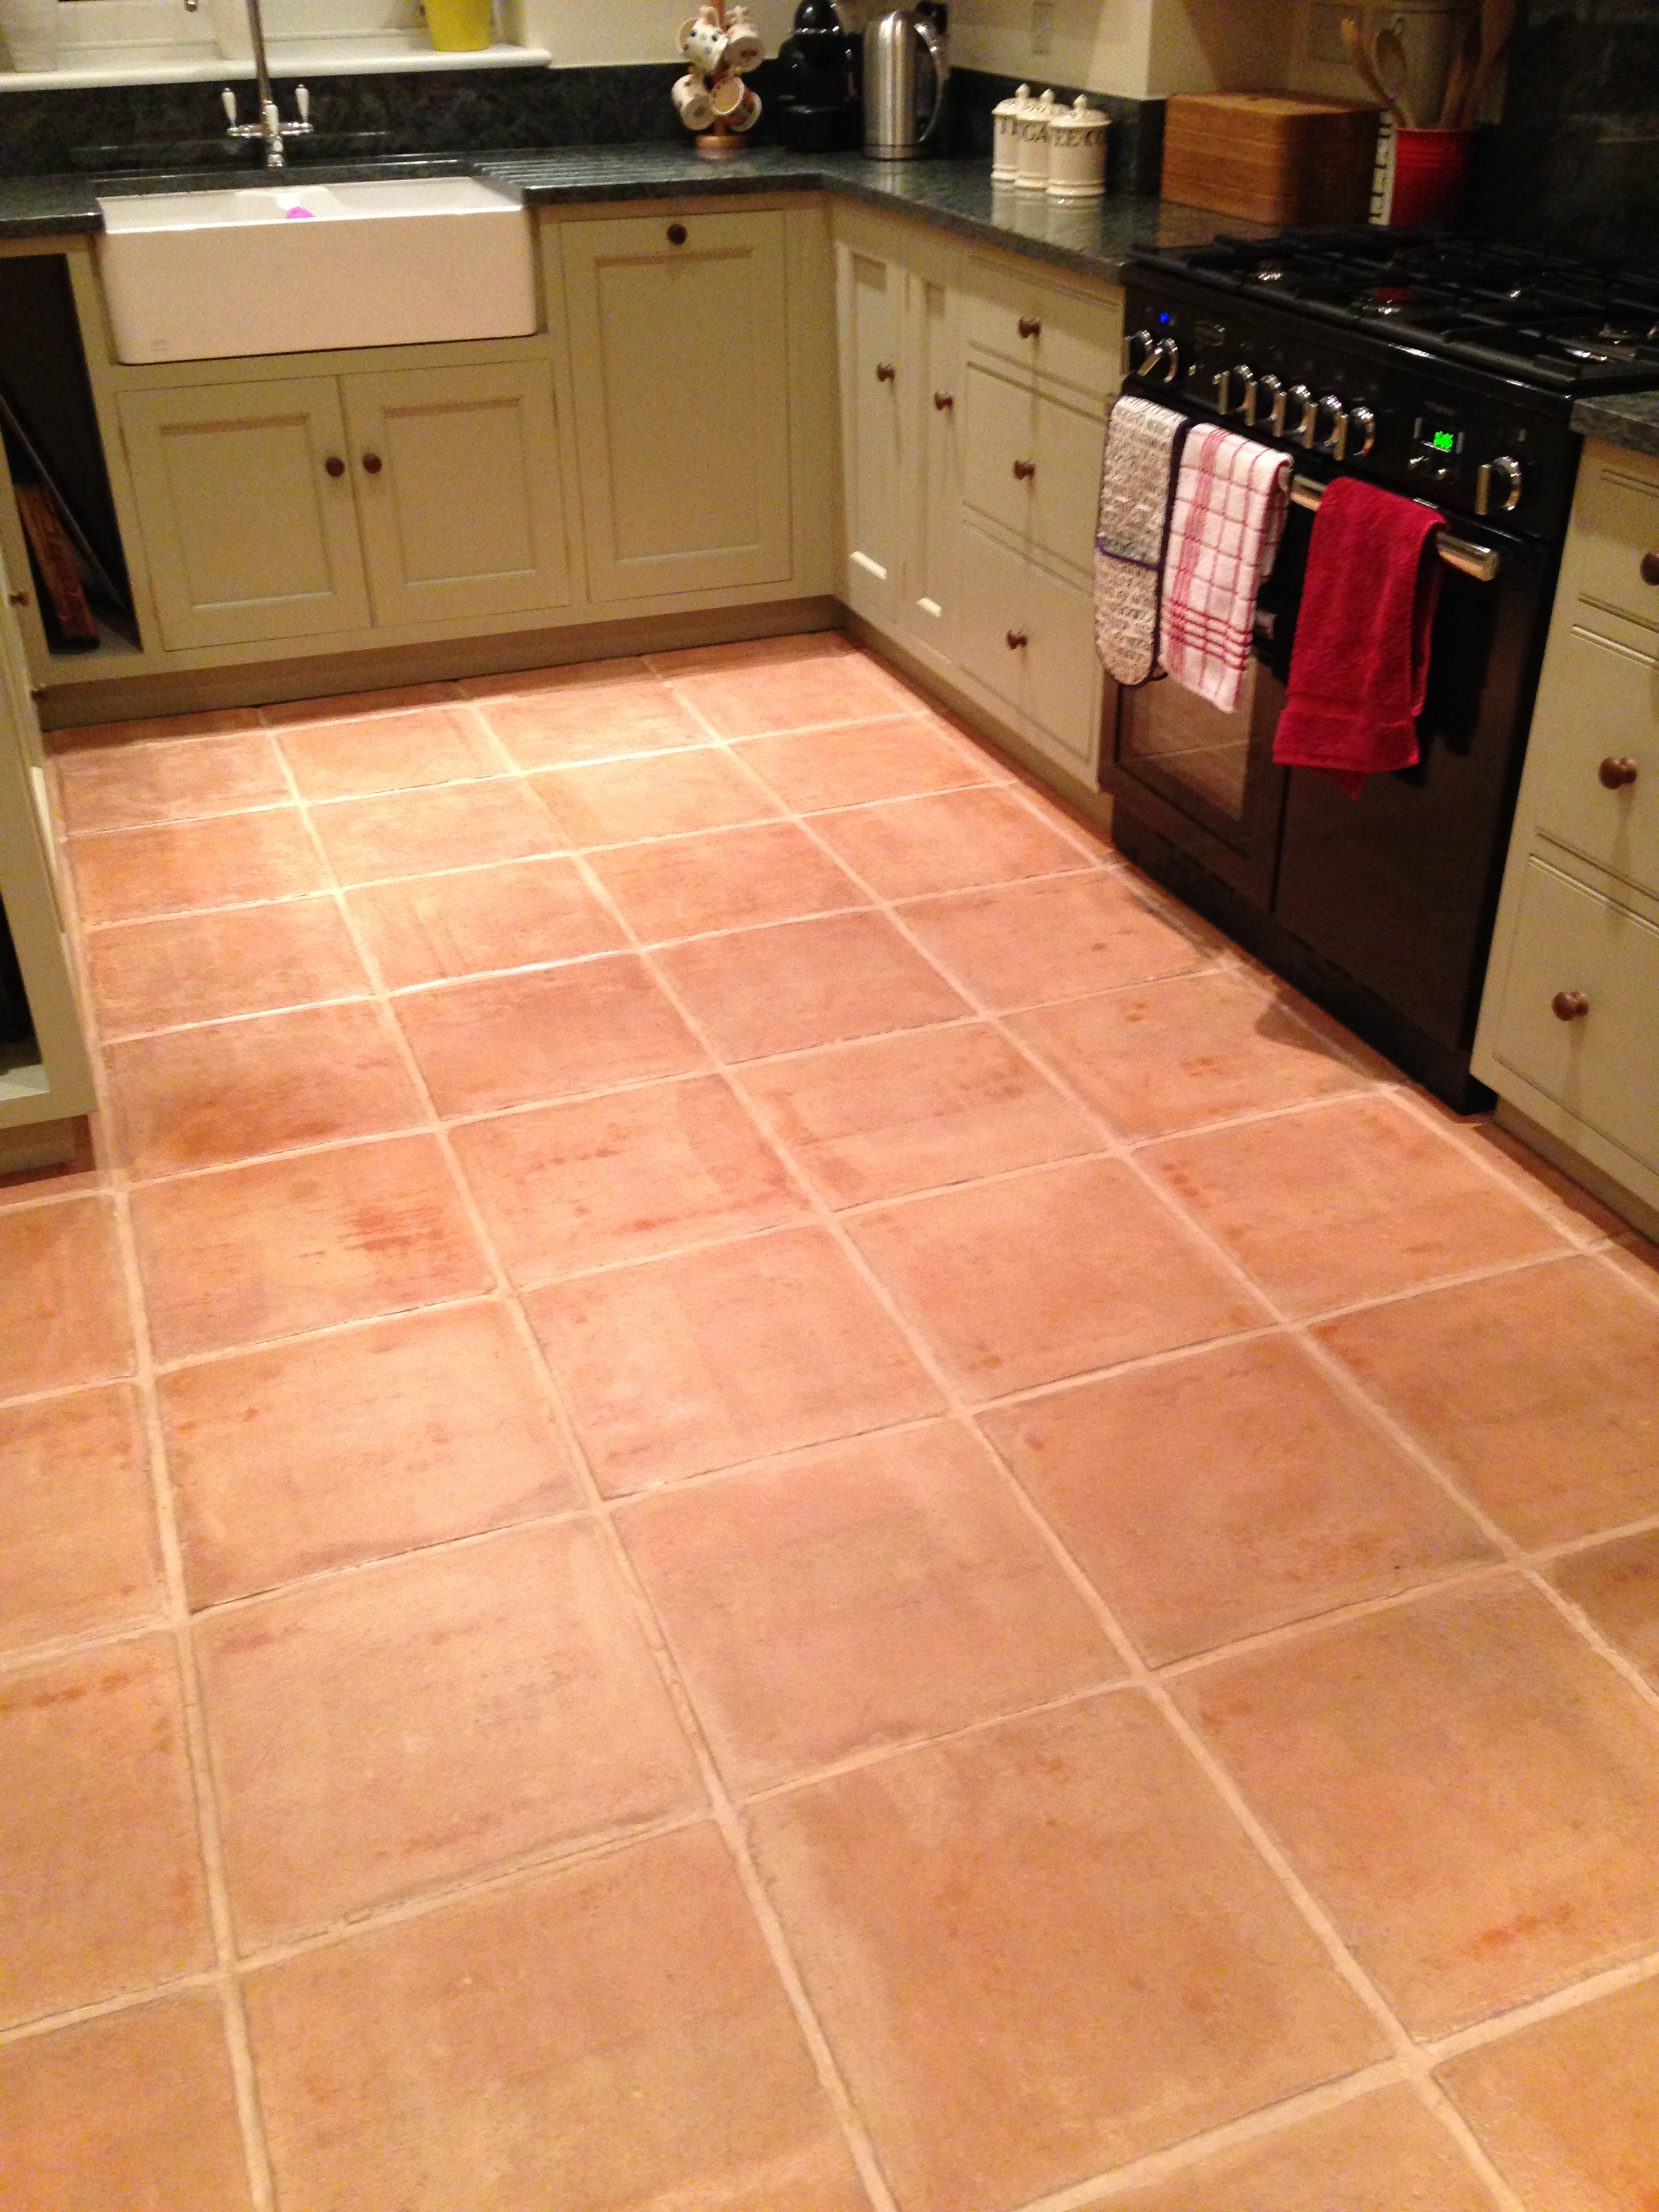 Terracotta Floor Tiles Kitchen Terracotta Tiles Terracotta Floor Tiles Also Outdoor Terracotta